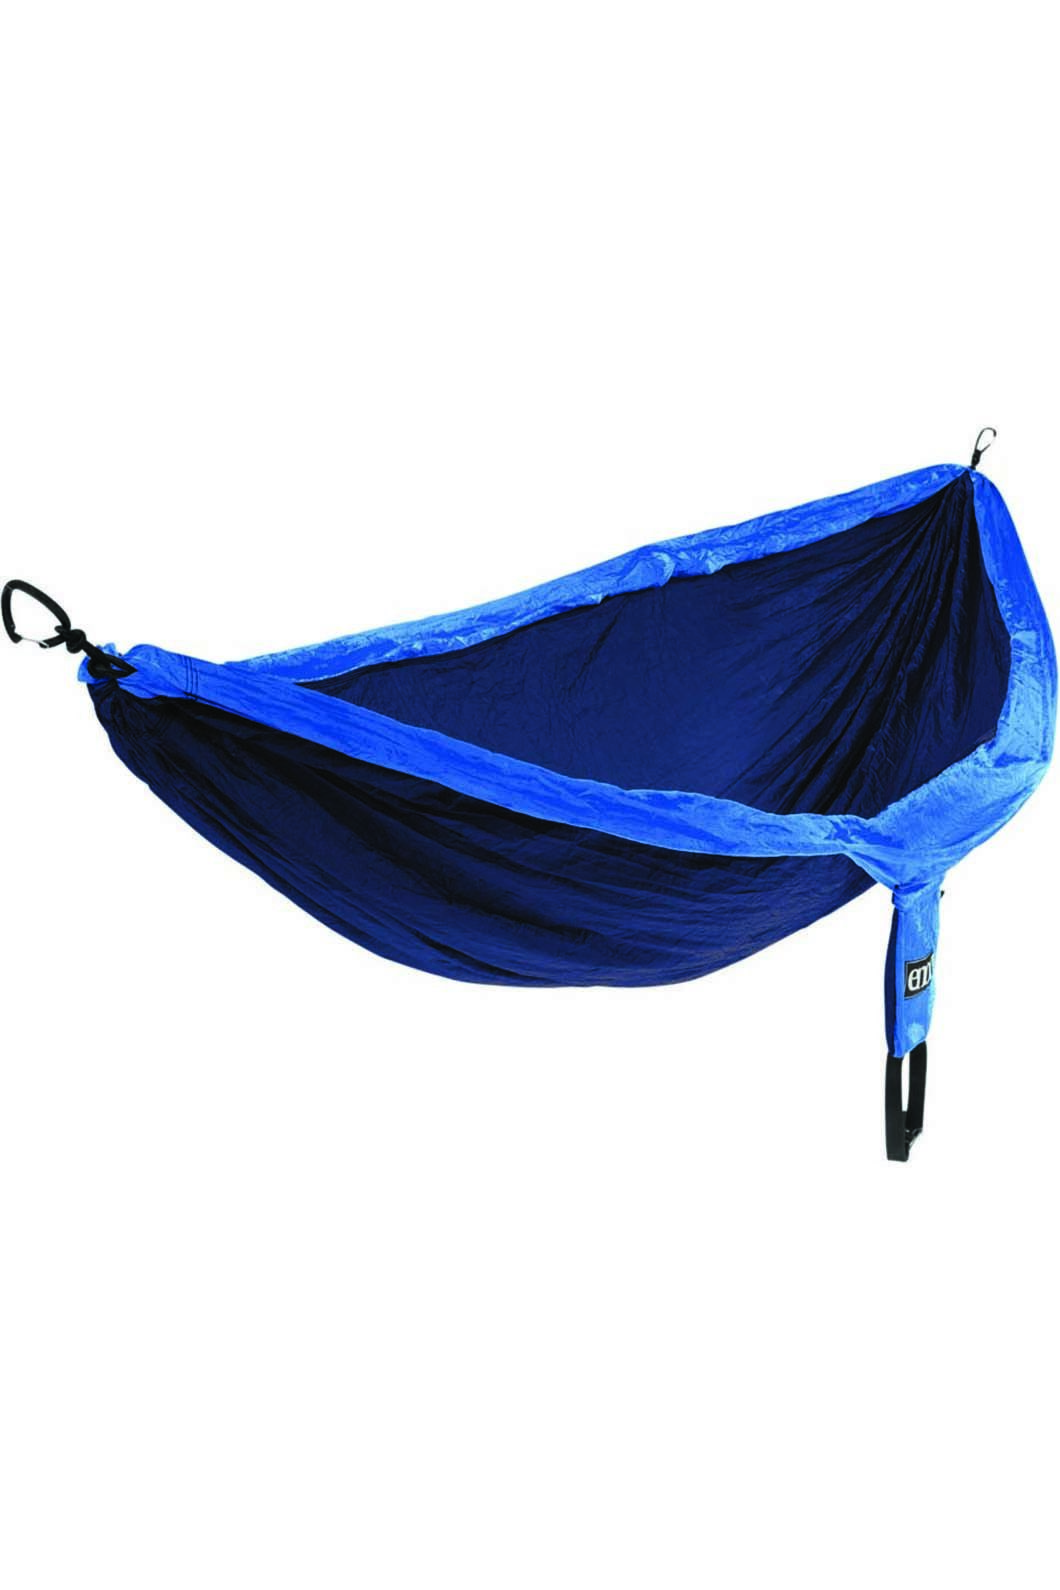 Eagle Nest Outfitters Nest Double Hammock Royal, NAVY ROYAL, hi-res